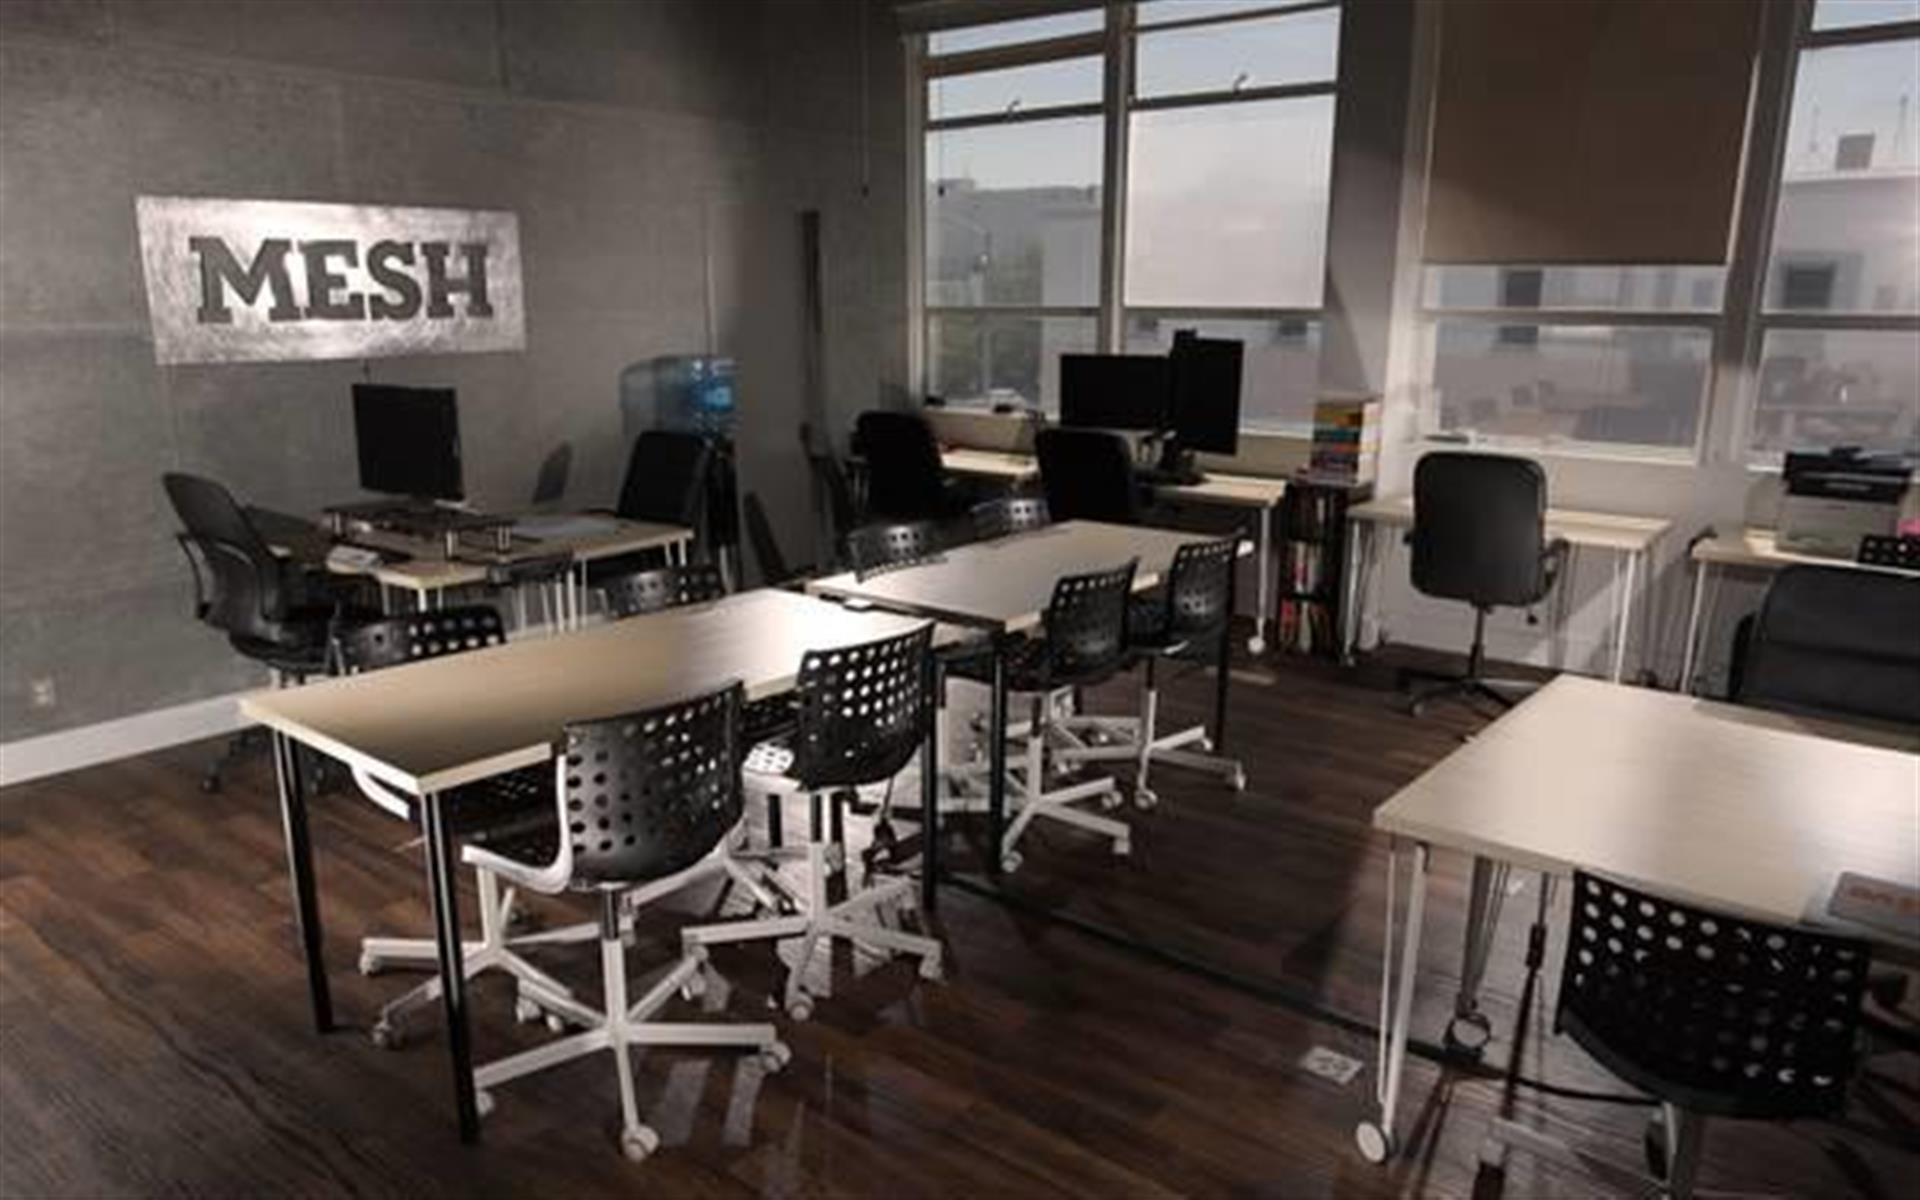 Mesh Cowork - Drop-in Day Usage